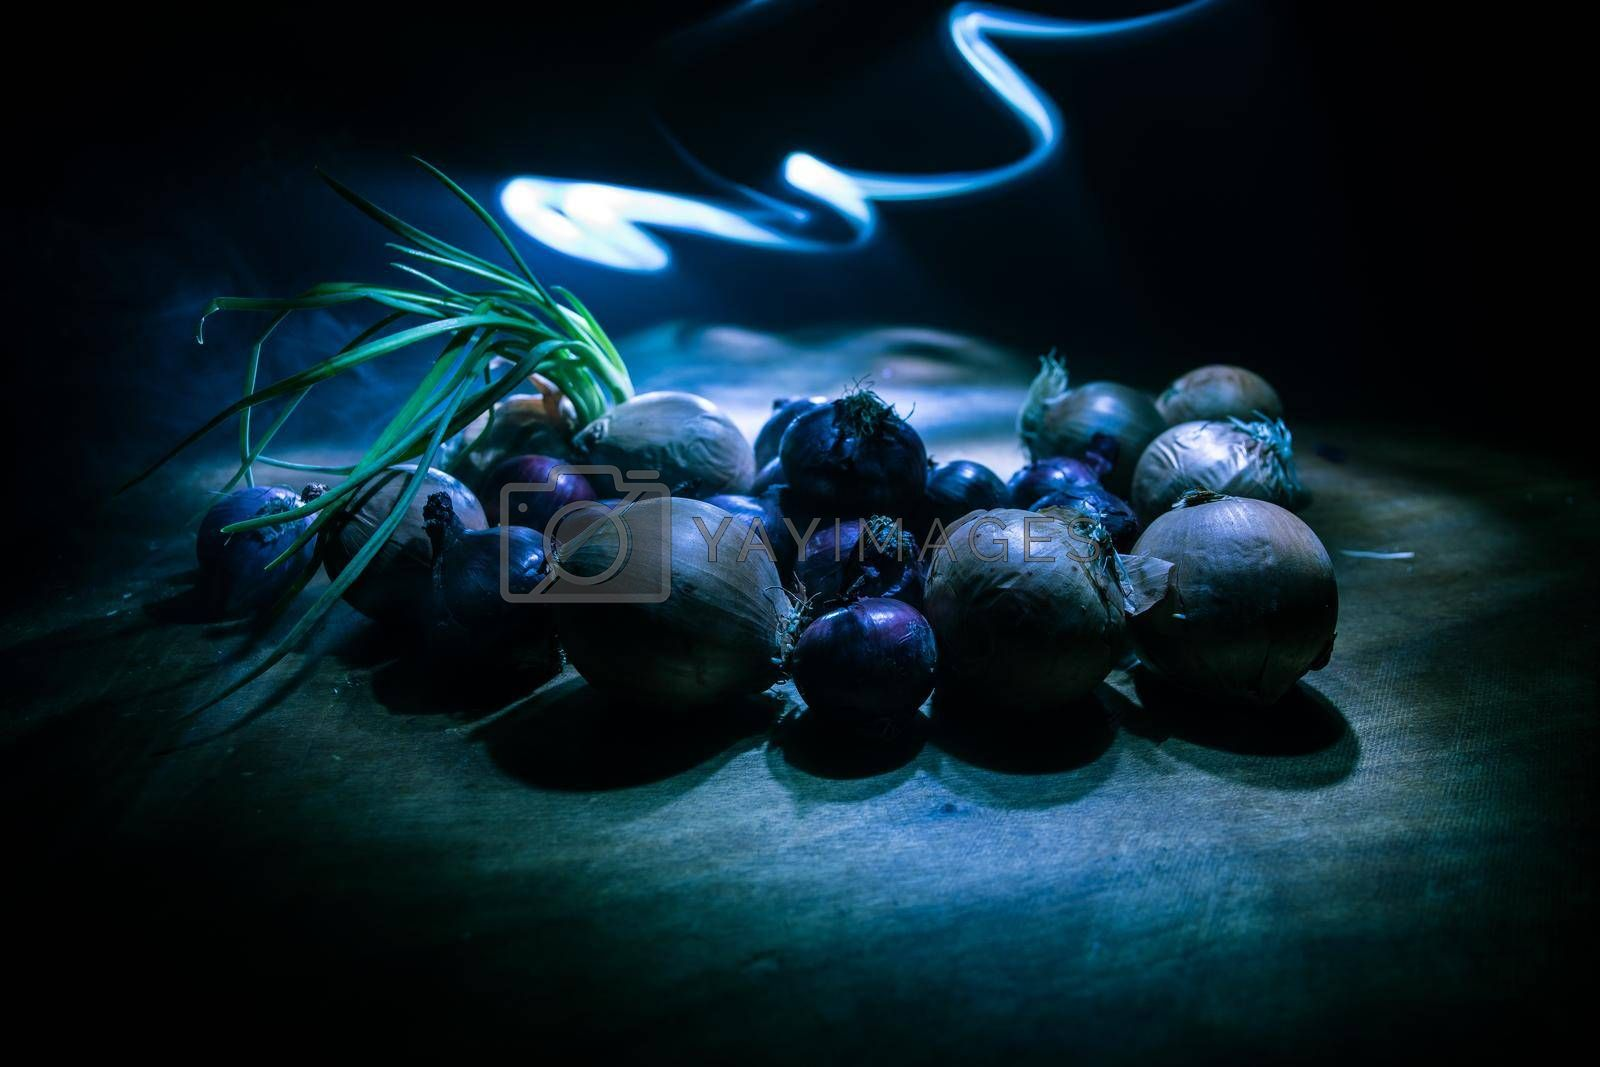 Vegetable concept. Different onions on wood in dark. Selective focus. Colorful background.